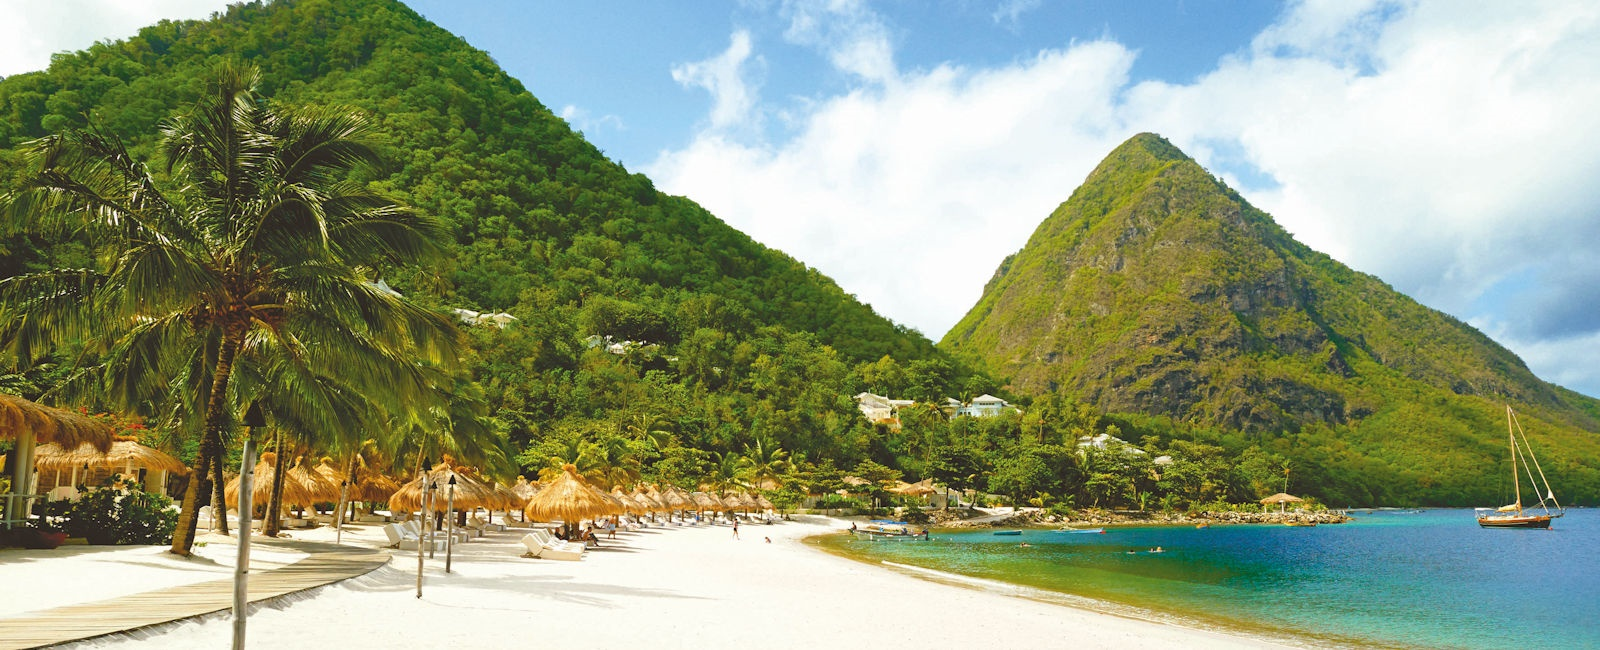 Luxury Val des Pitons Holidays